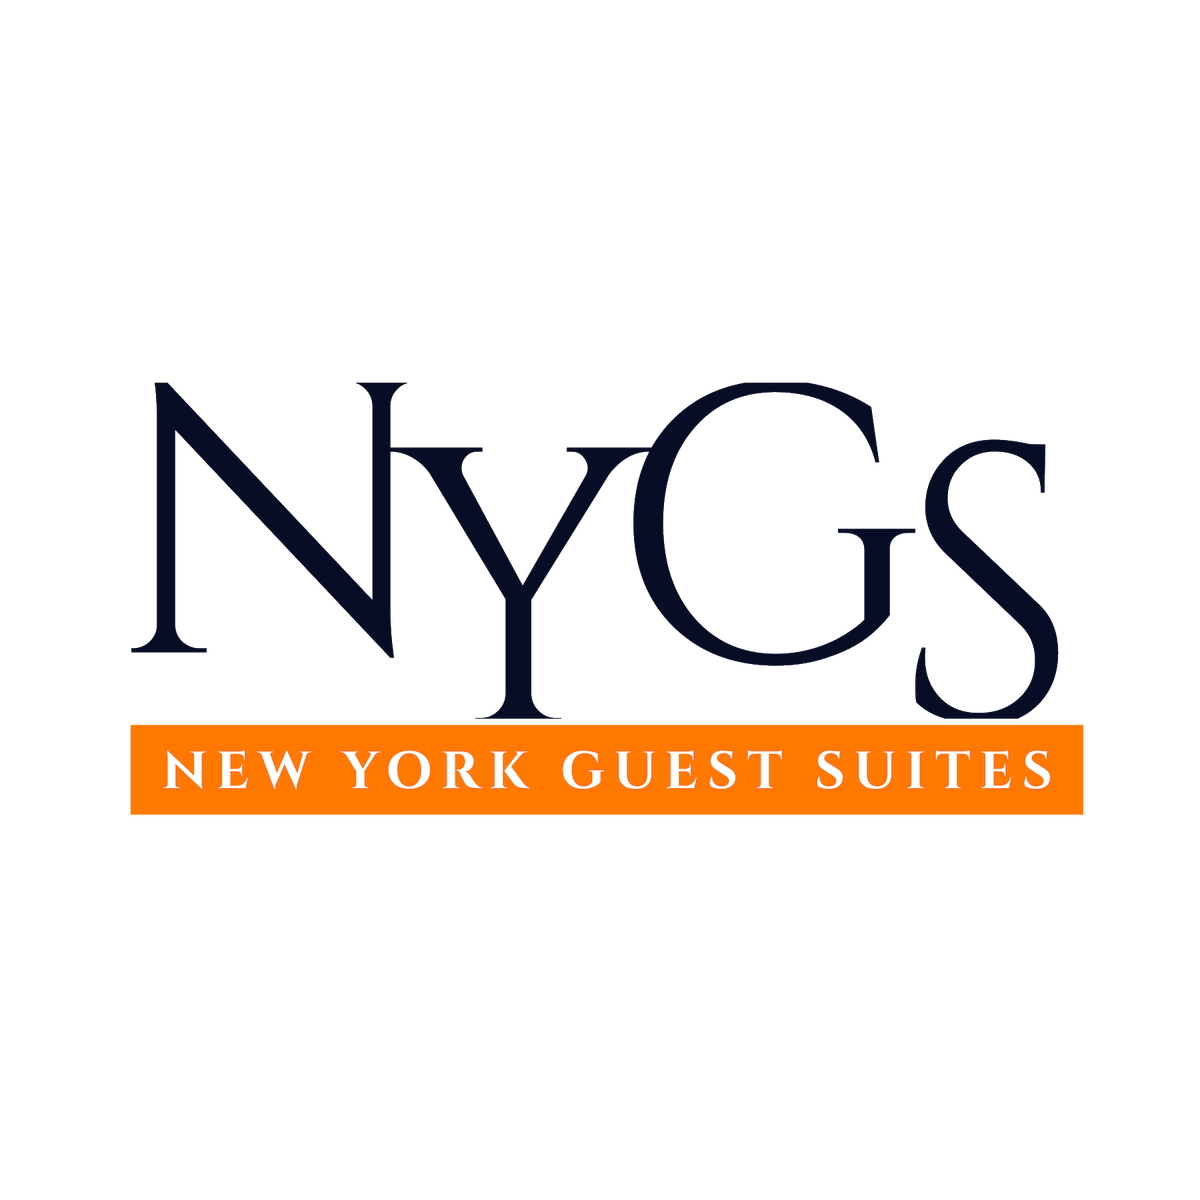 New York Guest Suites provide fully furnished suit